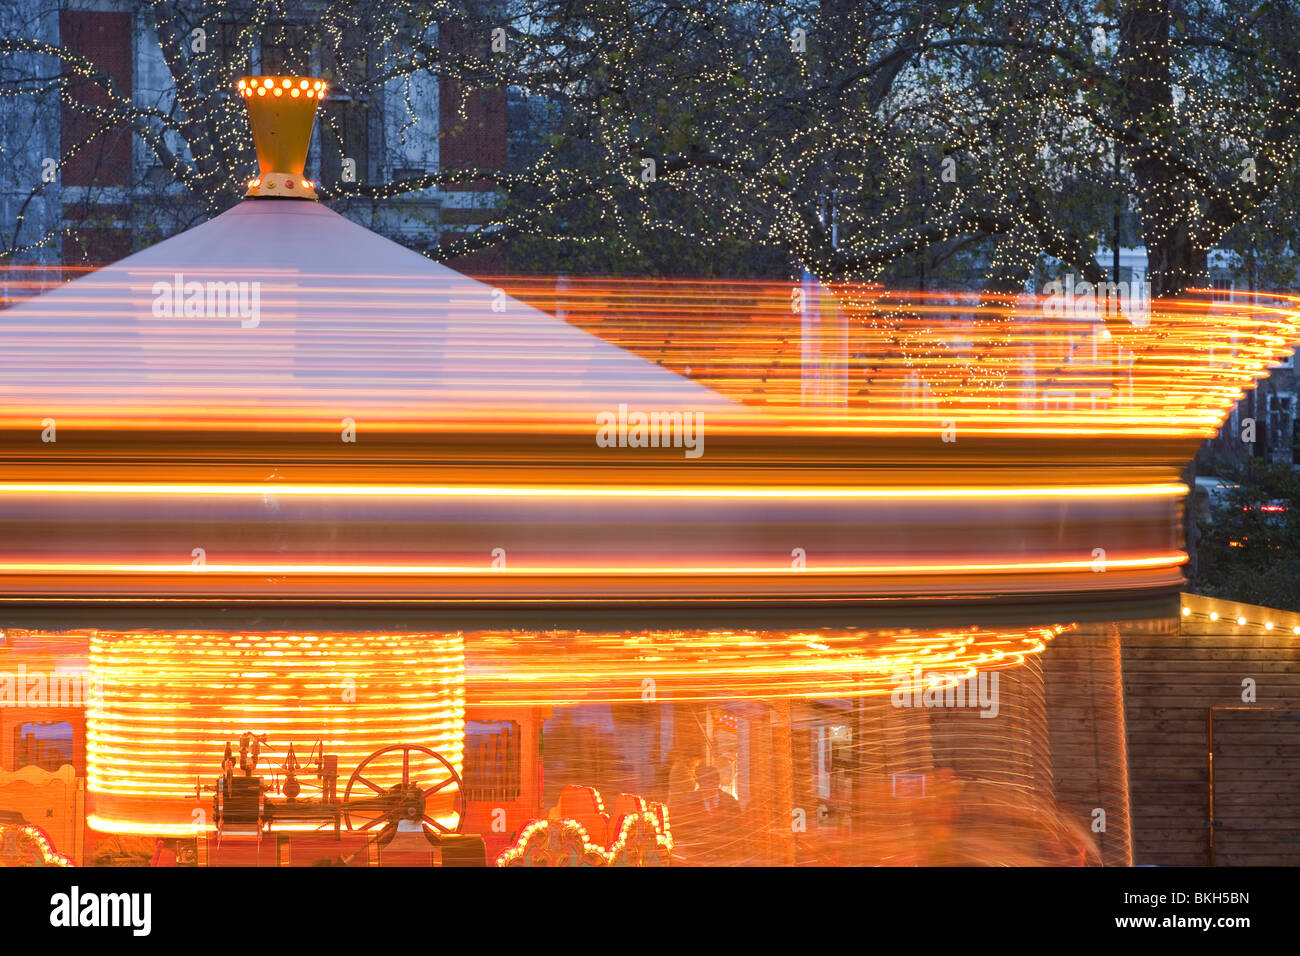 A fairground ride outside the Natural History Museum in London, UK. - Stock Image